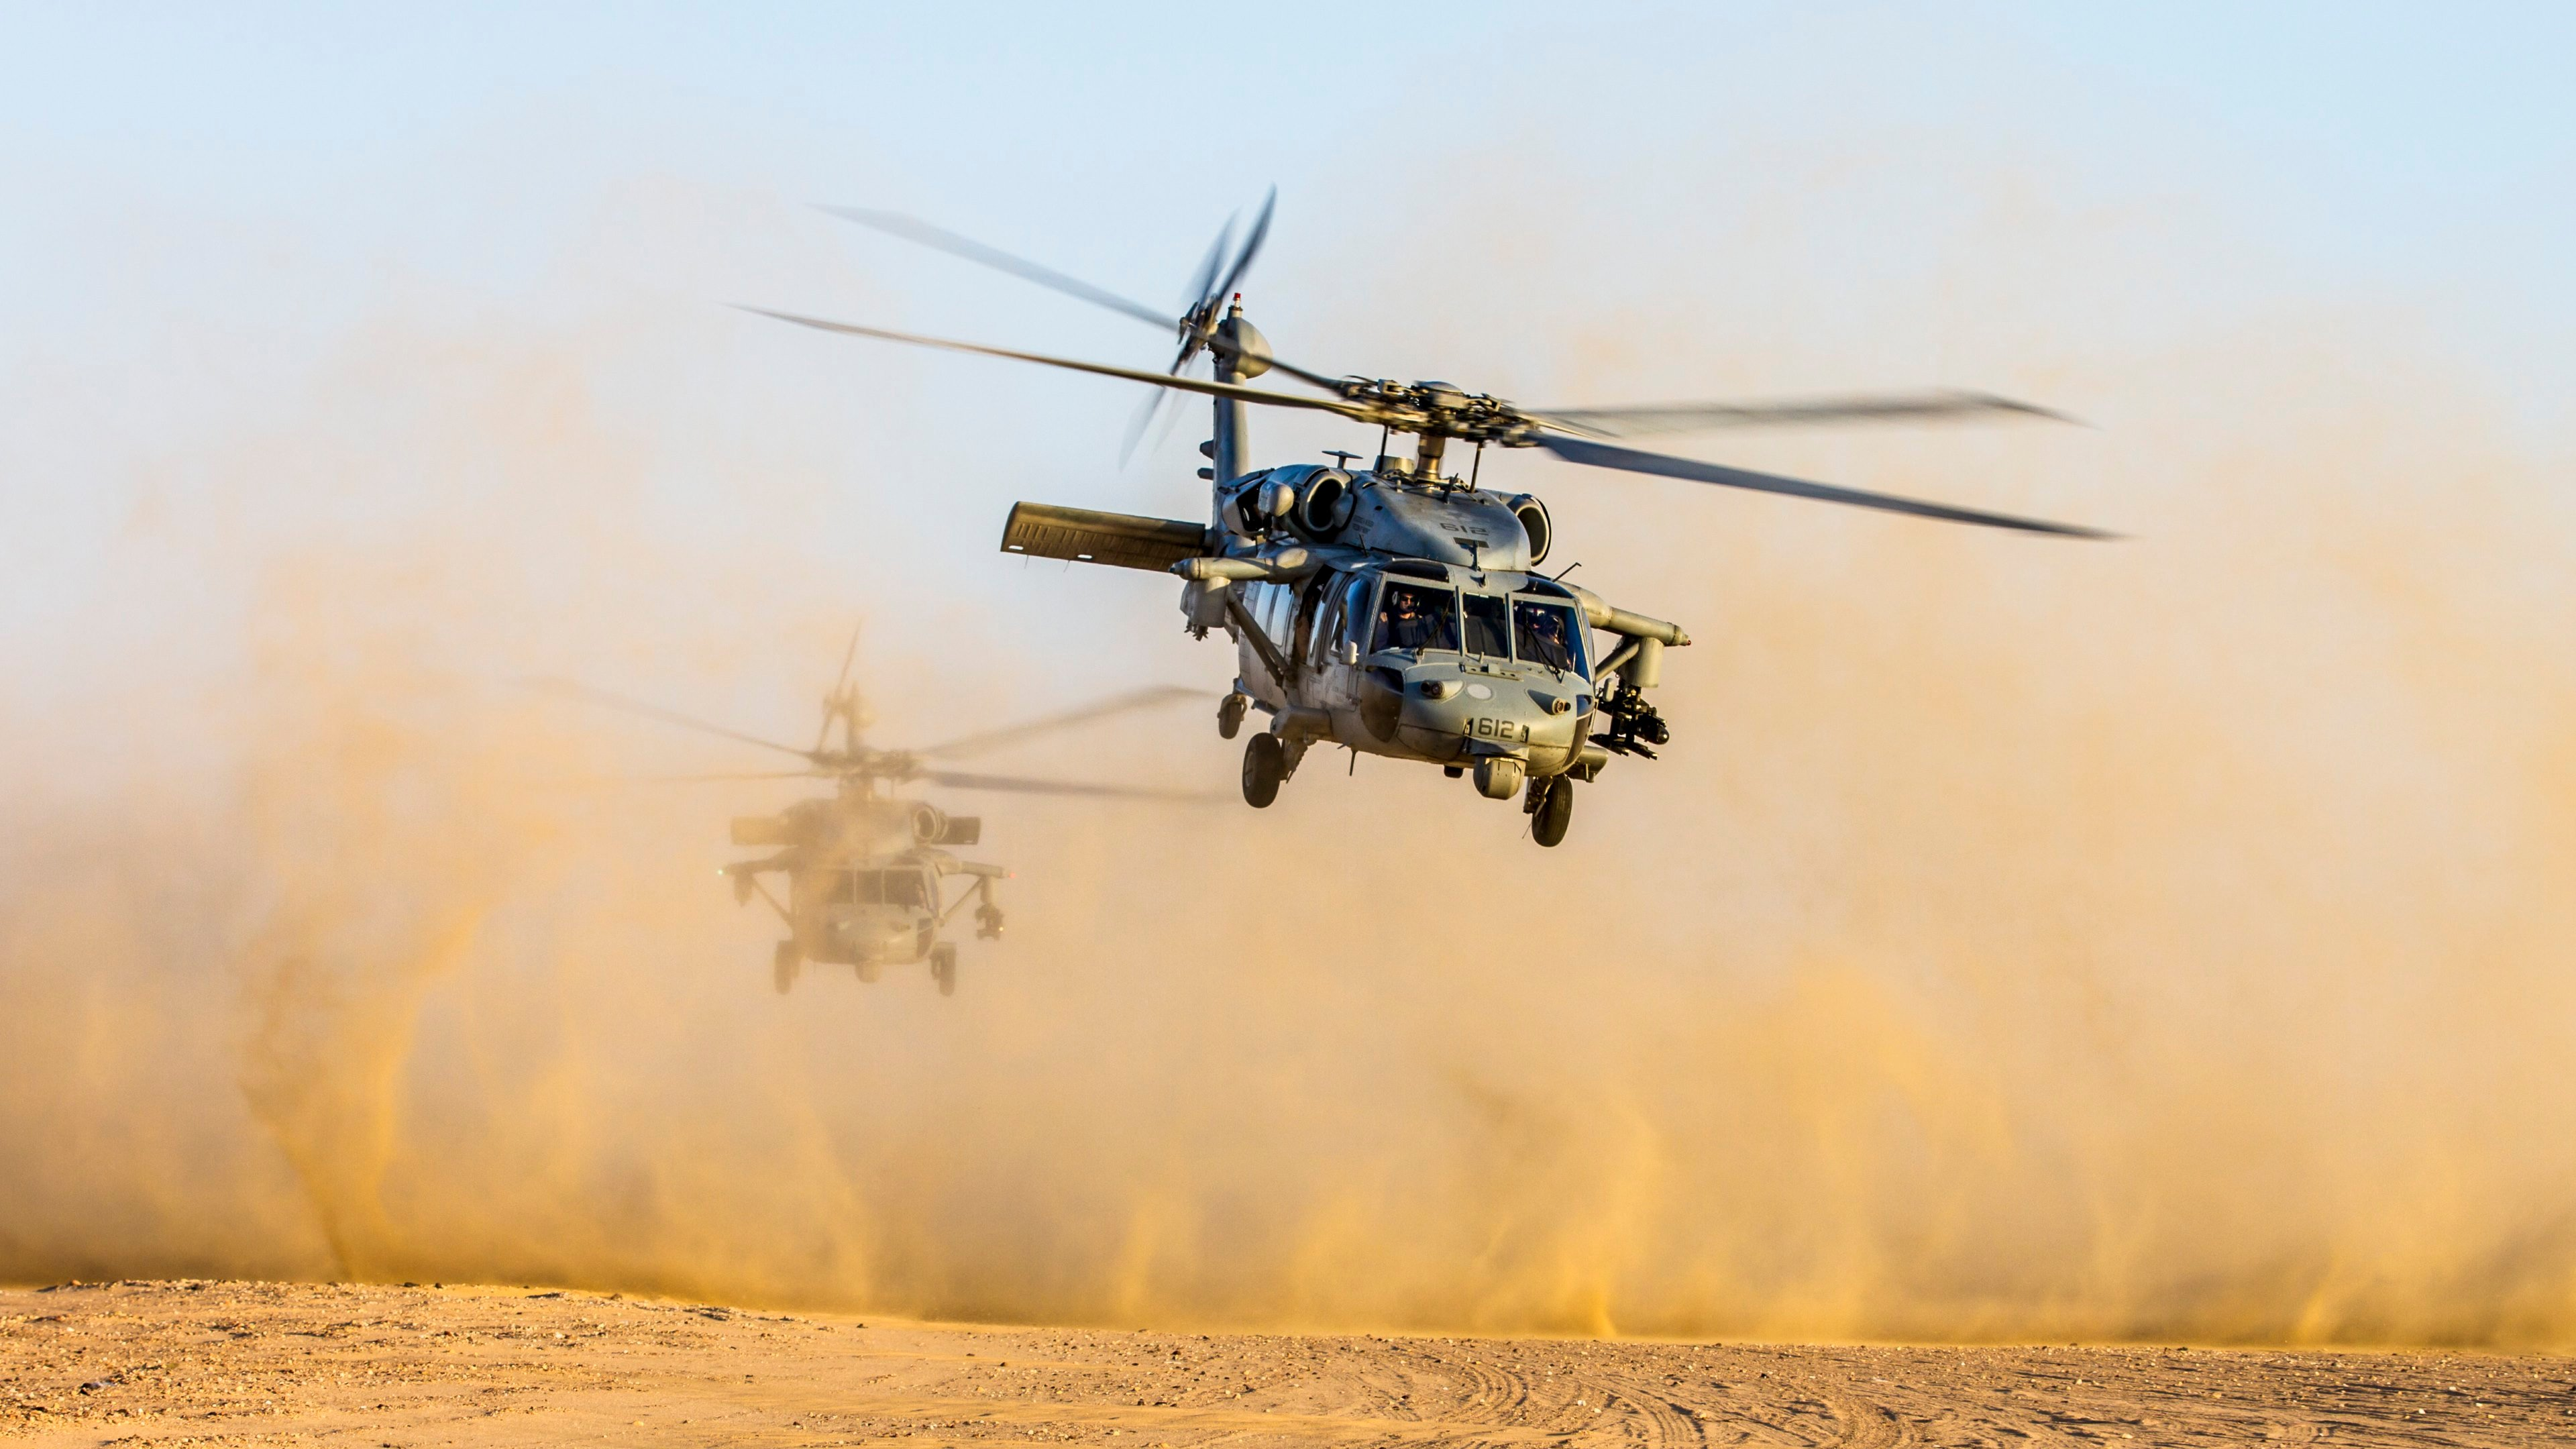 military helicopter wallpaper hd 2822 2982 hd wallpapersjpg 3840x2160